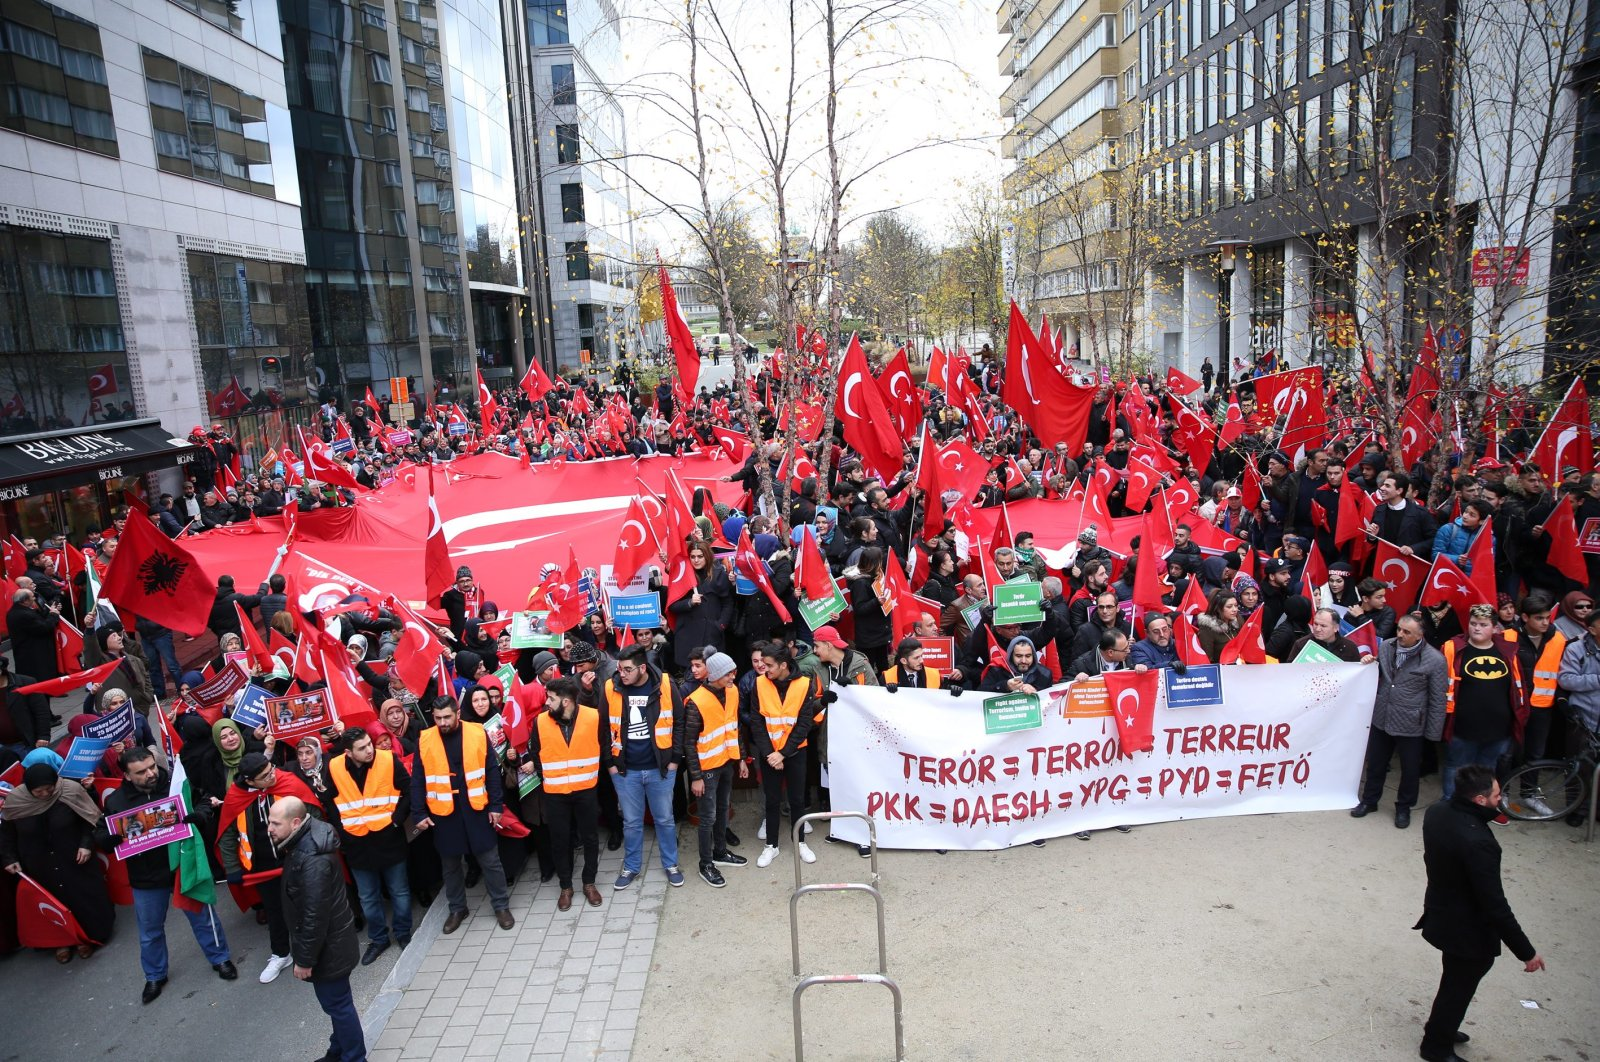 Members of the Turkish community hold a rally to protest against the PKK terror group in Belgium's capital, Brussels, Nov. 21, 2016. (AA Photo)